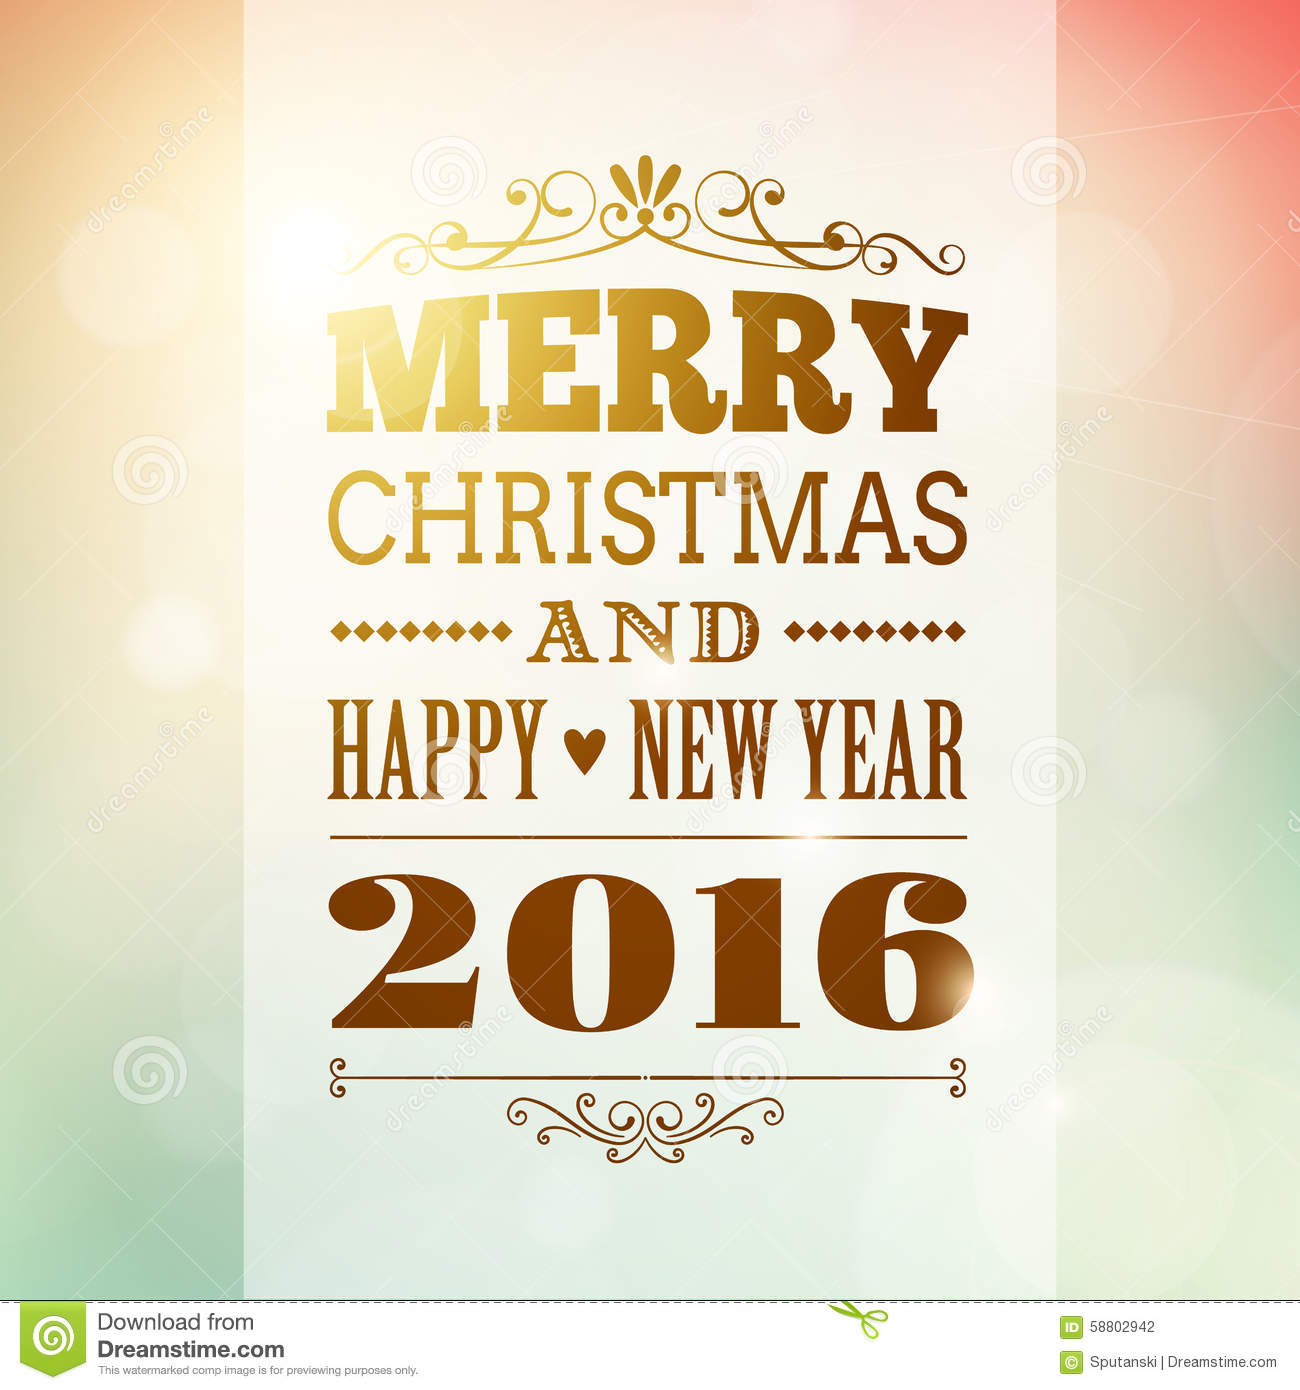 merry christmas and happy new year 2016 background